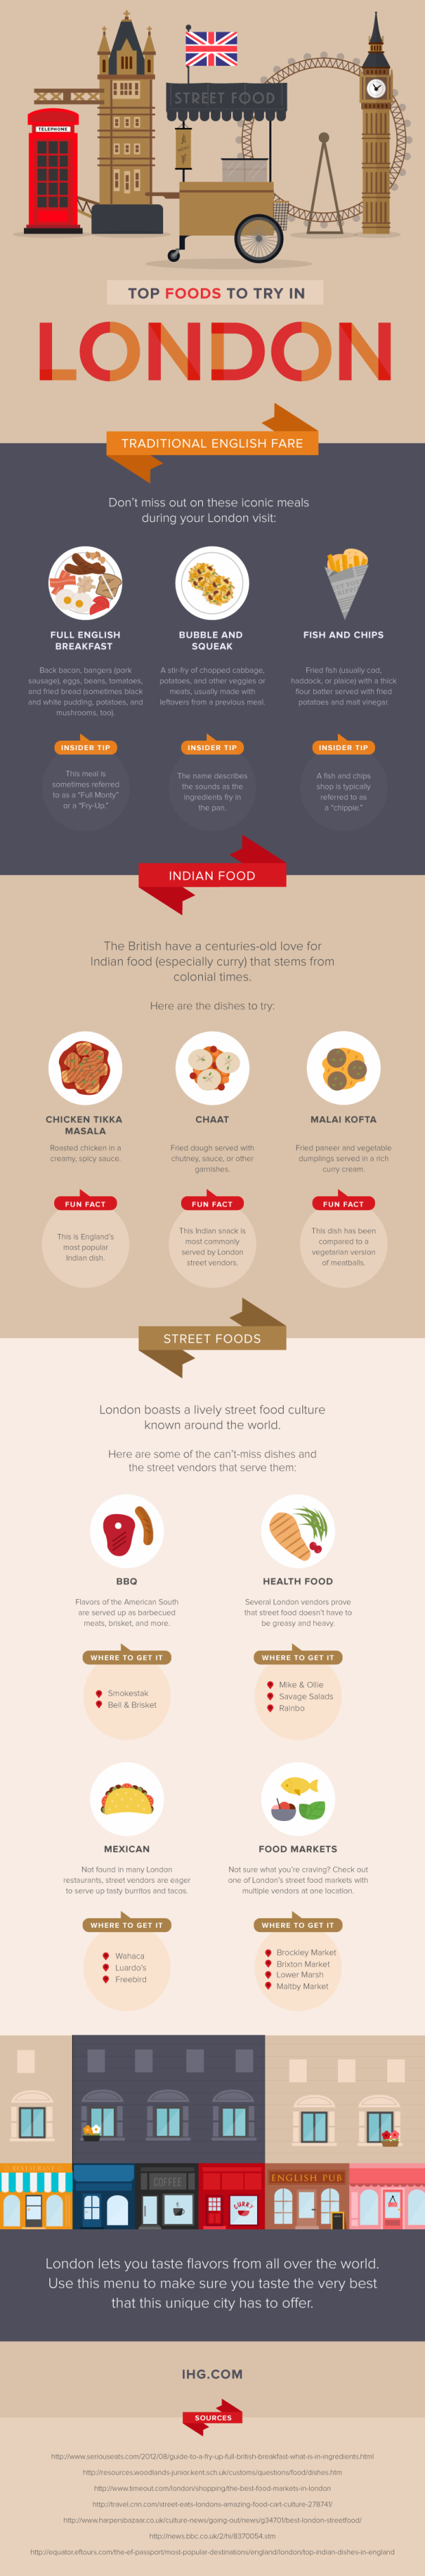 what to eat in London infographic